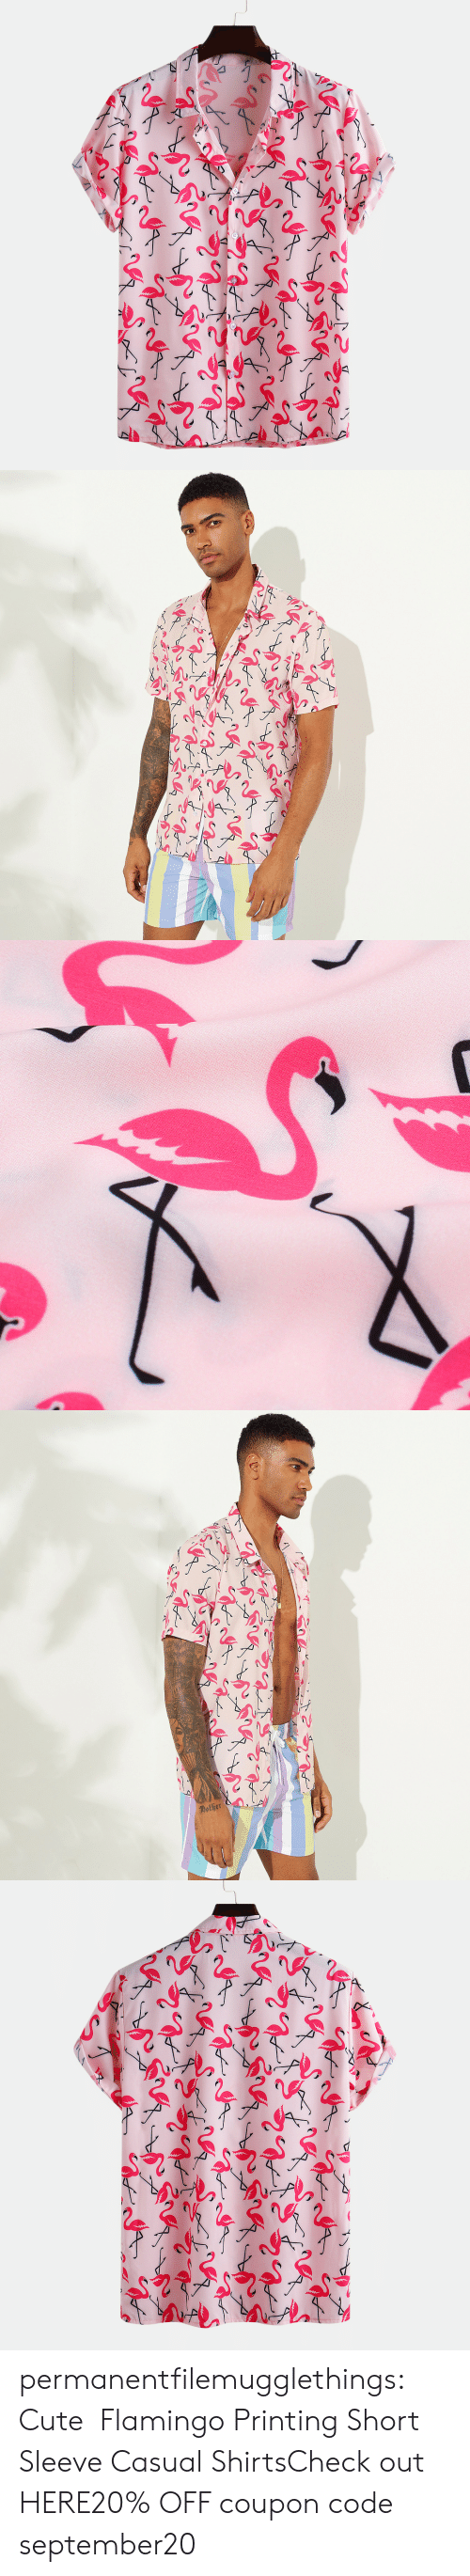 Printing: other permanentfilemugglethings:  Cute Flamingo Printing Short Sleeve Casual ShirtsCheck out HERE20% OFF coupon code:september20